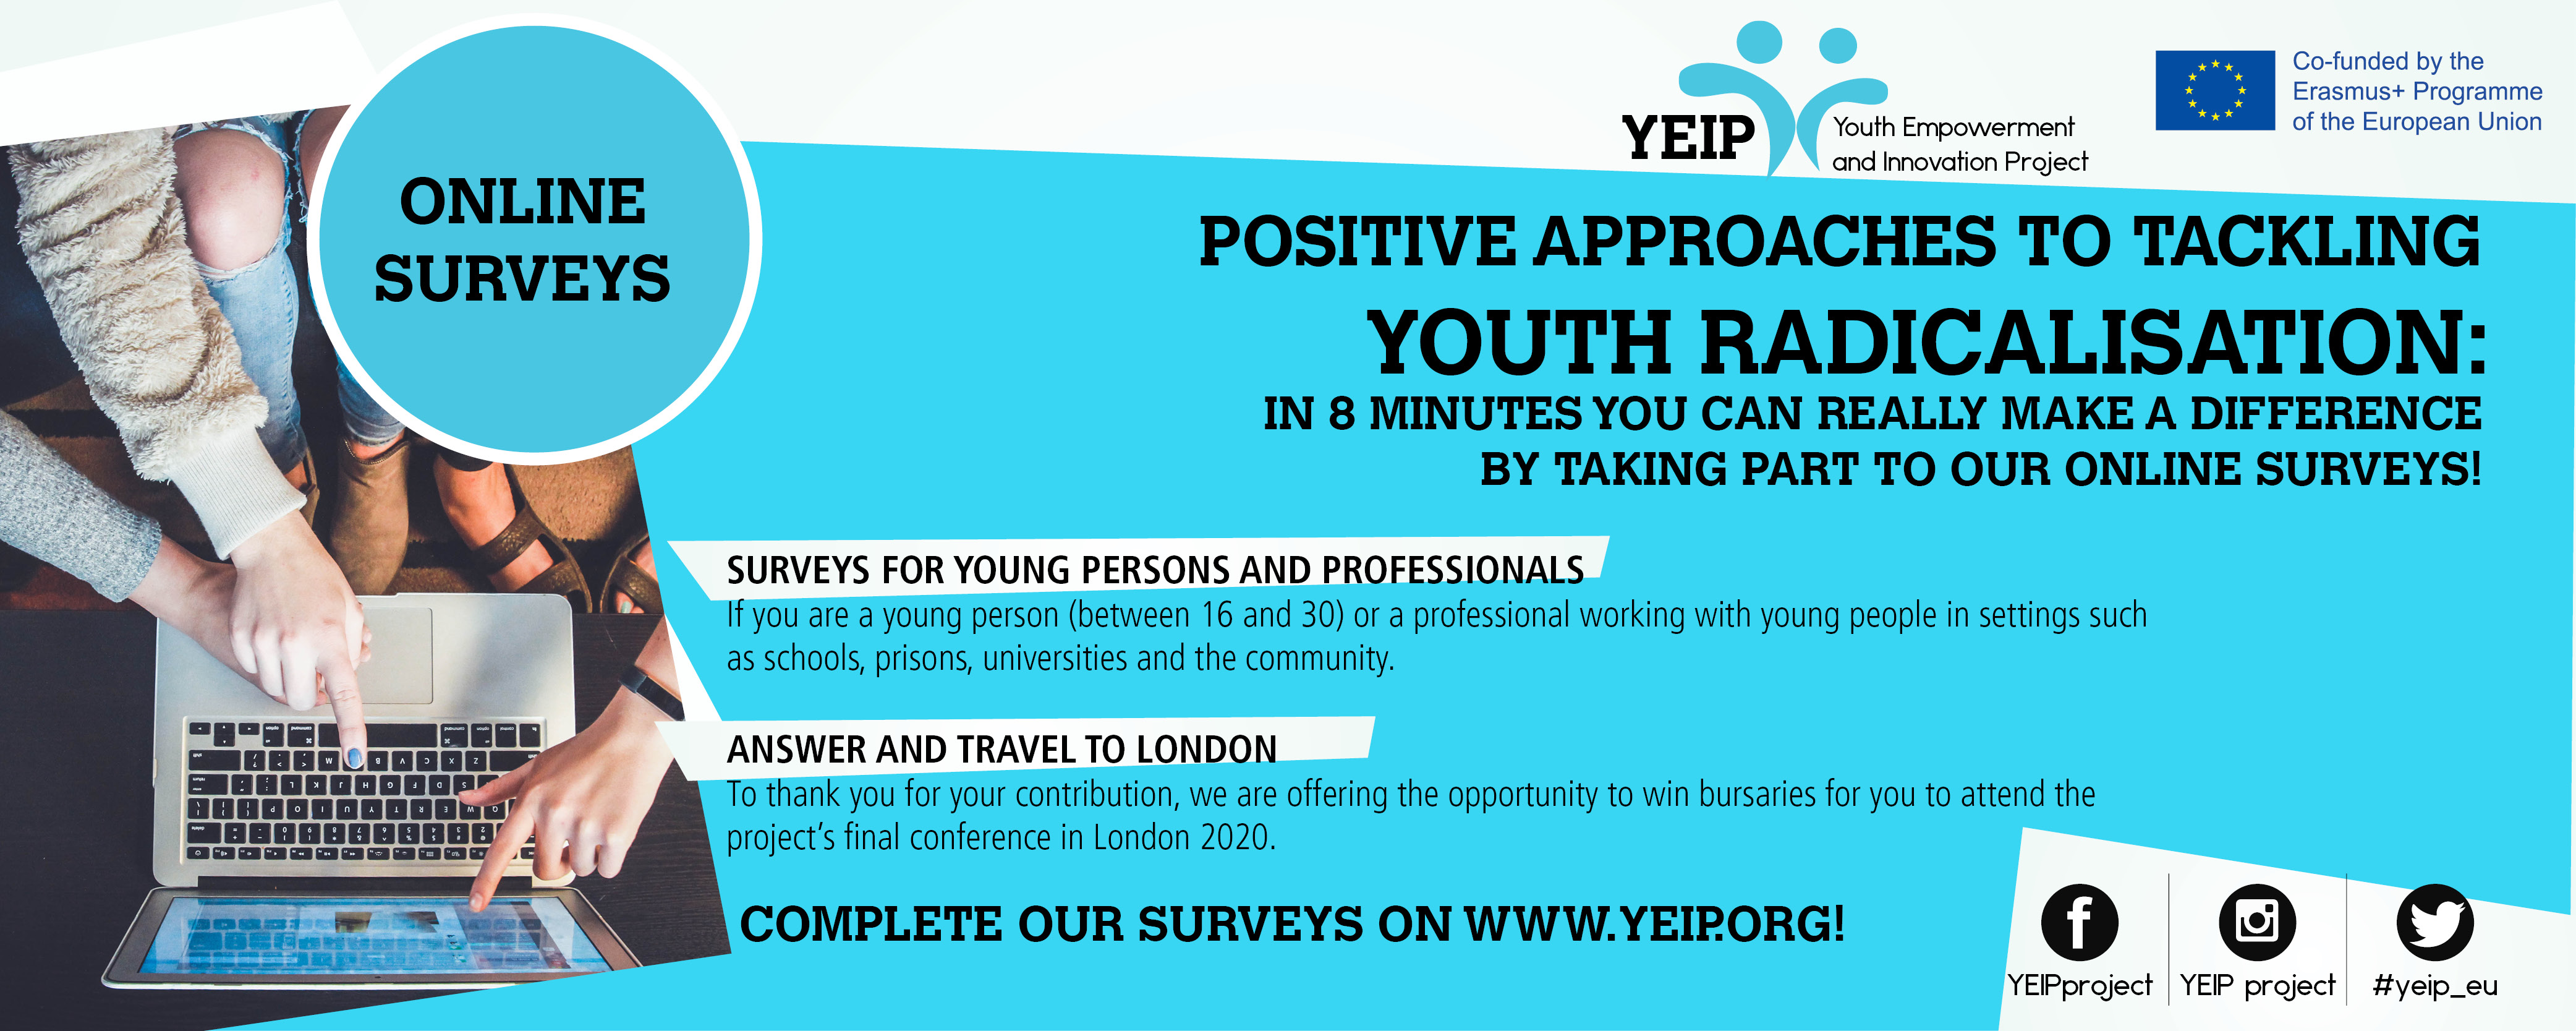 YEIP - Youth Empowerment and Innovation Project